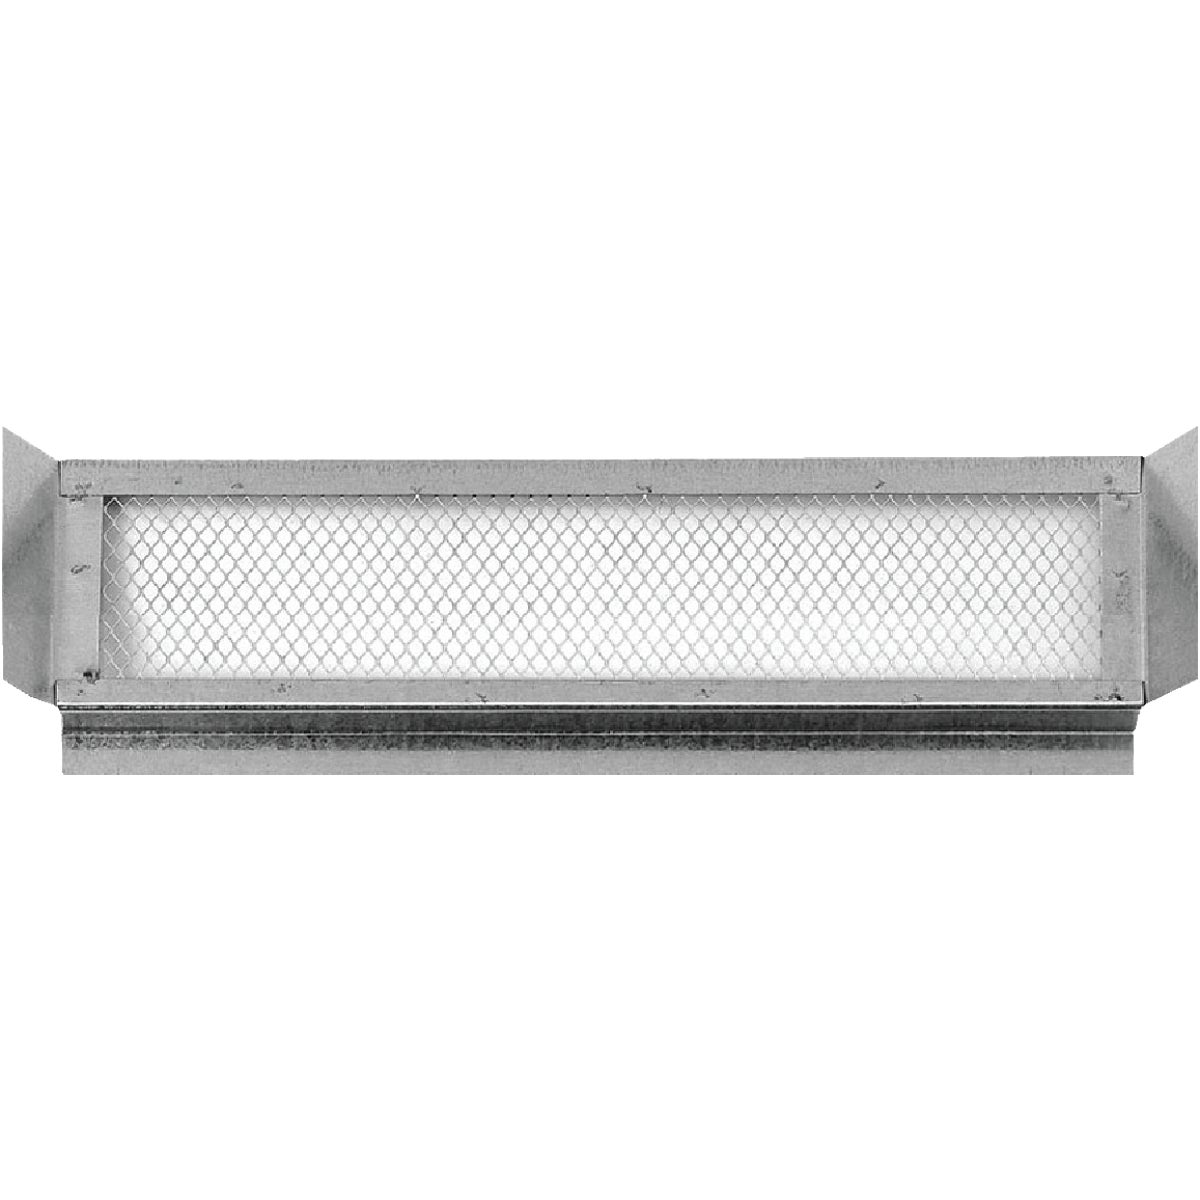 5-1/2X22 GALV EAVE VENT - 556177 by Noll/norwesco Llc